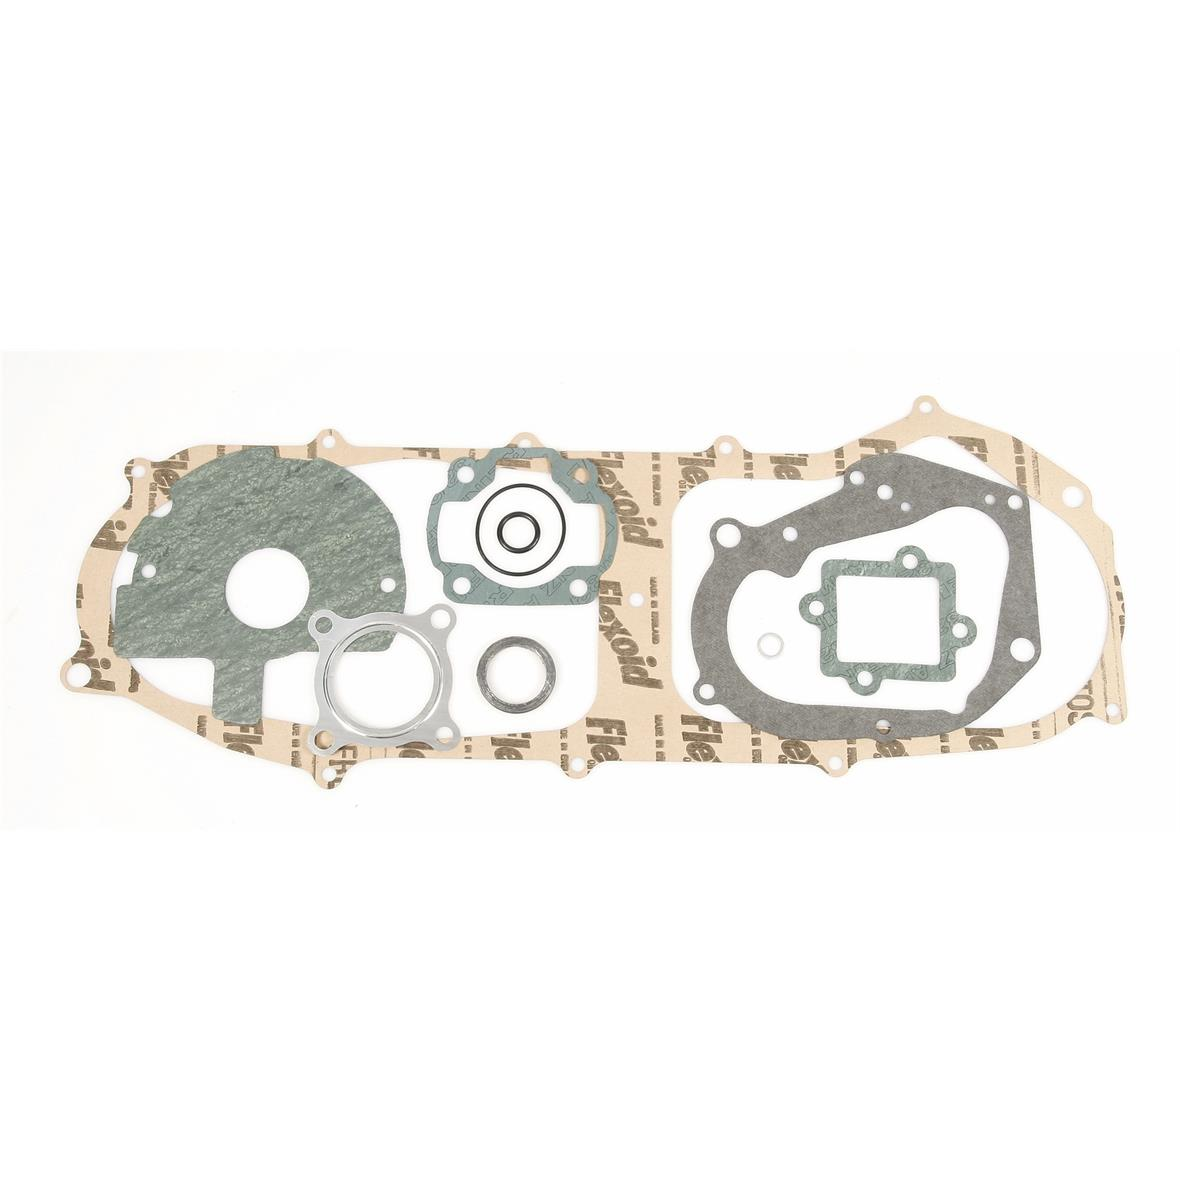 Product Image for 'Gasket set Minarellihorizontal Aprilia Gulliver/Rally/Scarabeo/SR 50 -'93Title'